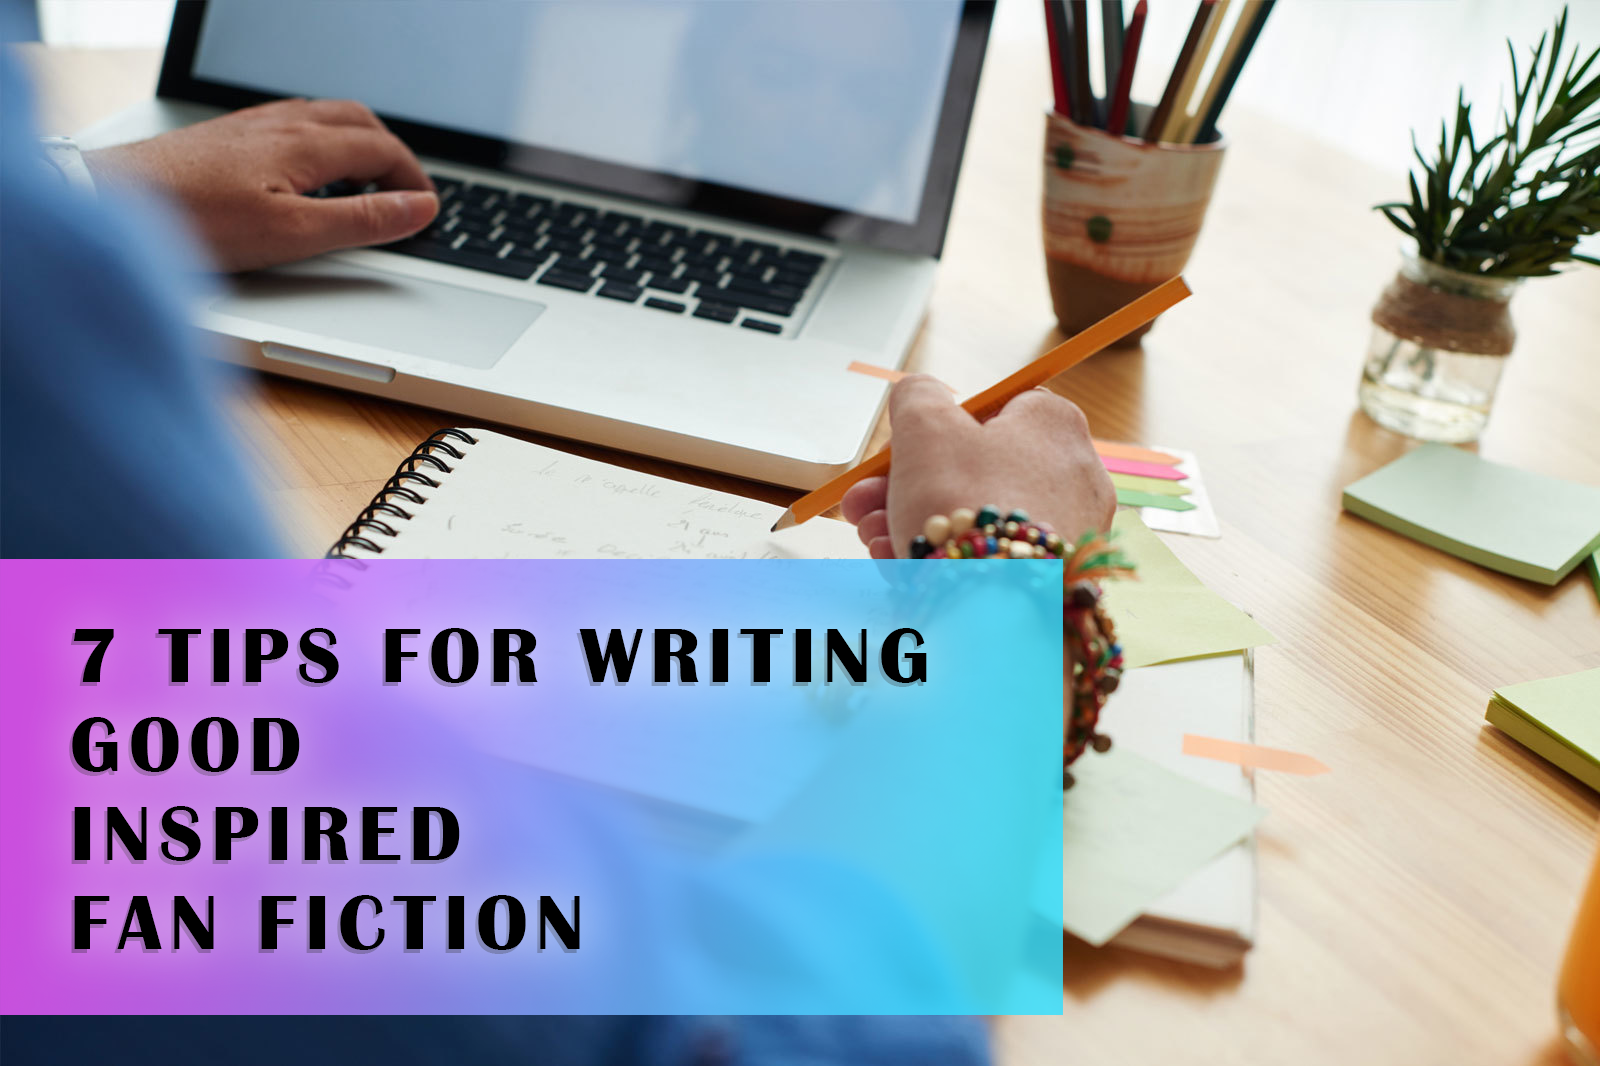 7 Tips for Writing Good, Inspired Fan Fiction